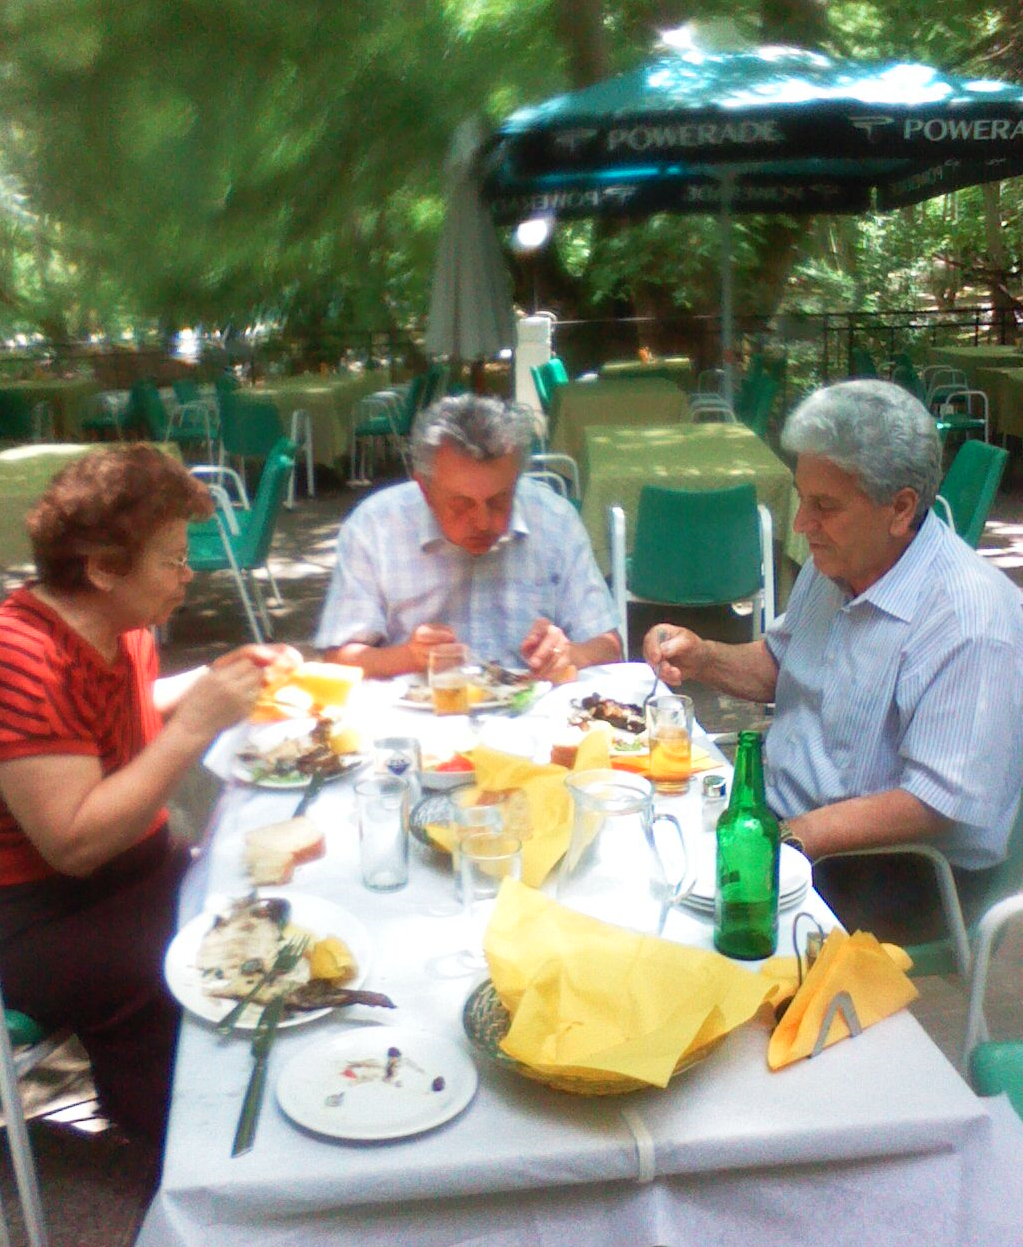 Filepeople Eating At Table In Restaurantpng Wikimedia Commons